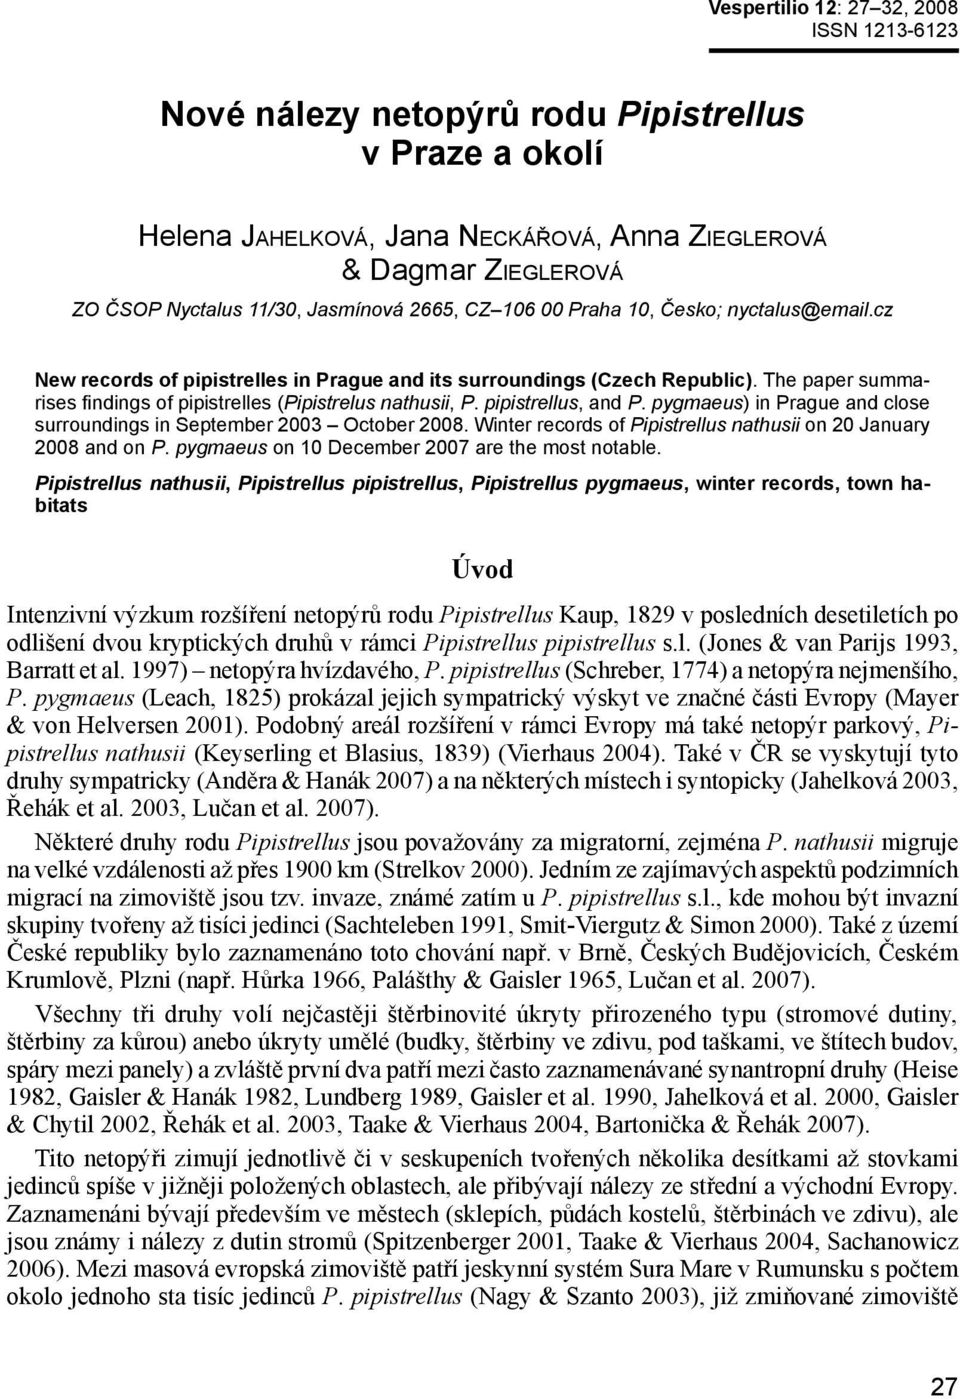 The paper summarises findings of pipistrelles (Pipistrelus nathusii, P. pipistrellus, and P. pygmaeus) in Prague and close surroundings in September 2003 October 2008.